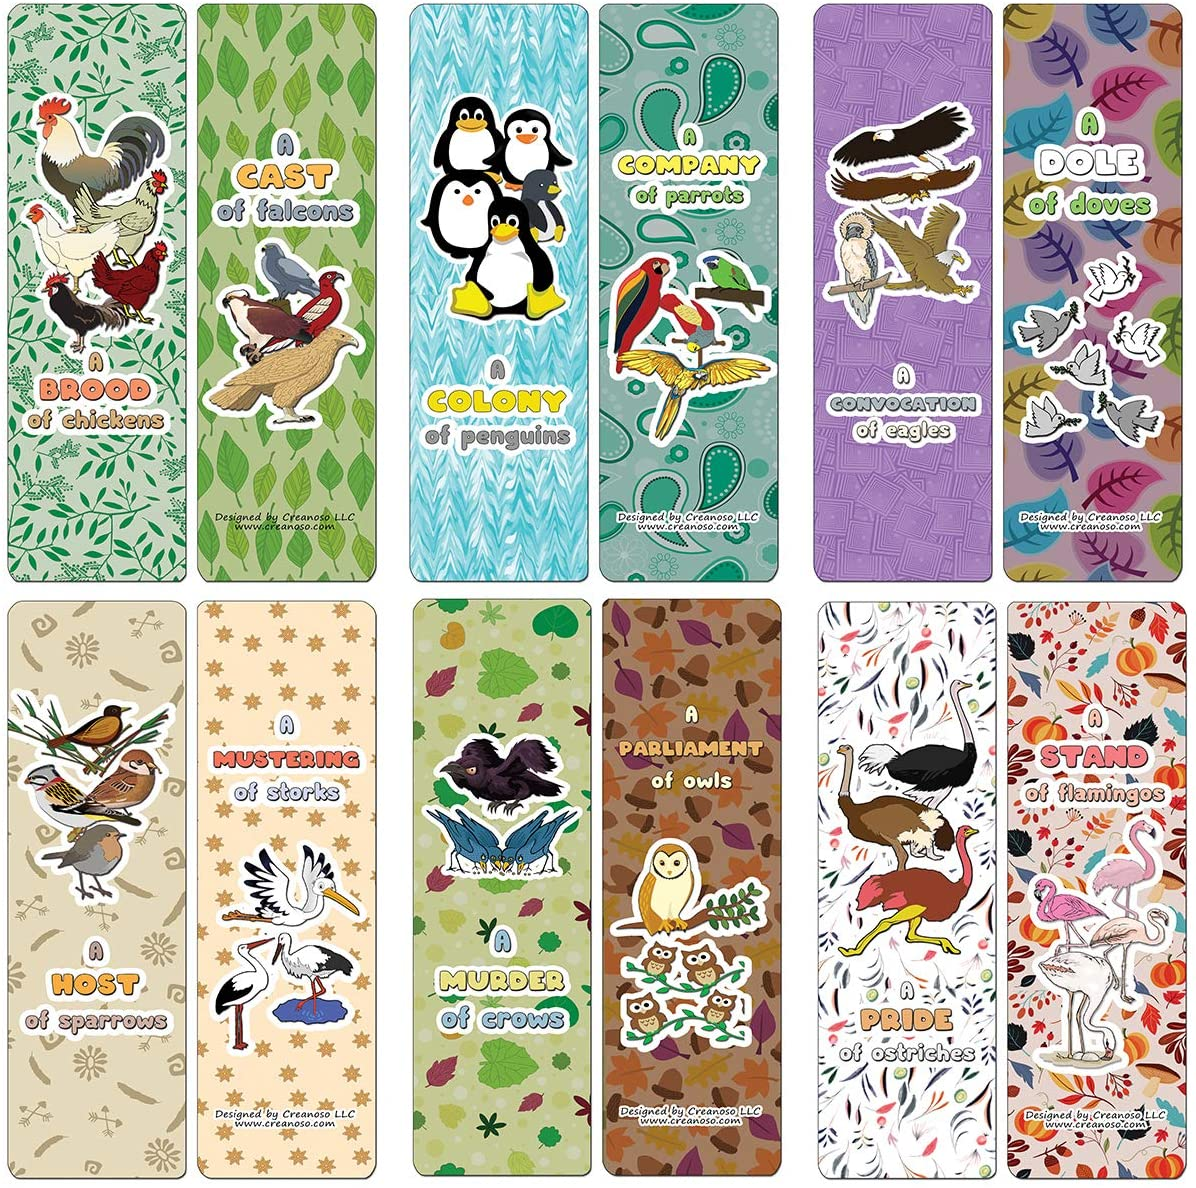 Creanoso Educational Bookmarks for Kids - Animal Group Names - Birds (12-Pack) - Stocking Stuffers Party Favors & Giveaways for Teens & Adults - Classroom Reward Incentives for Students and Children